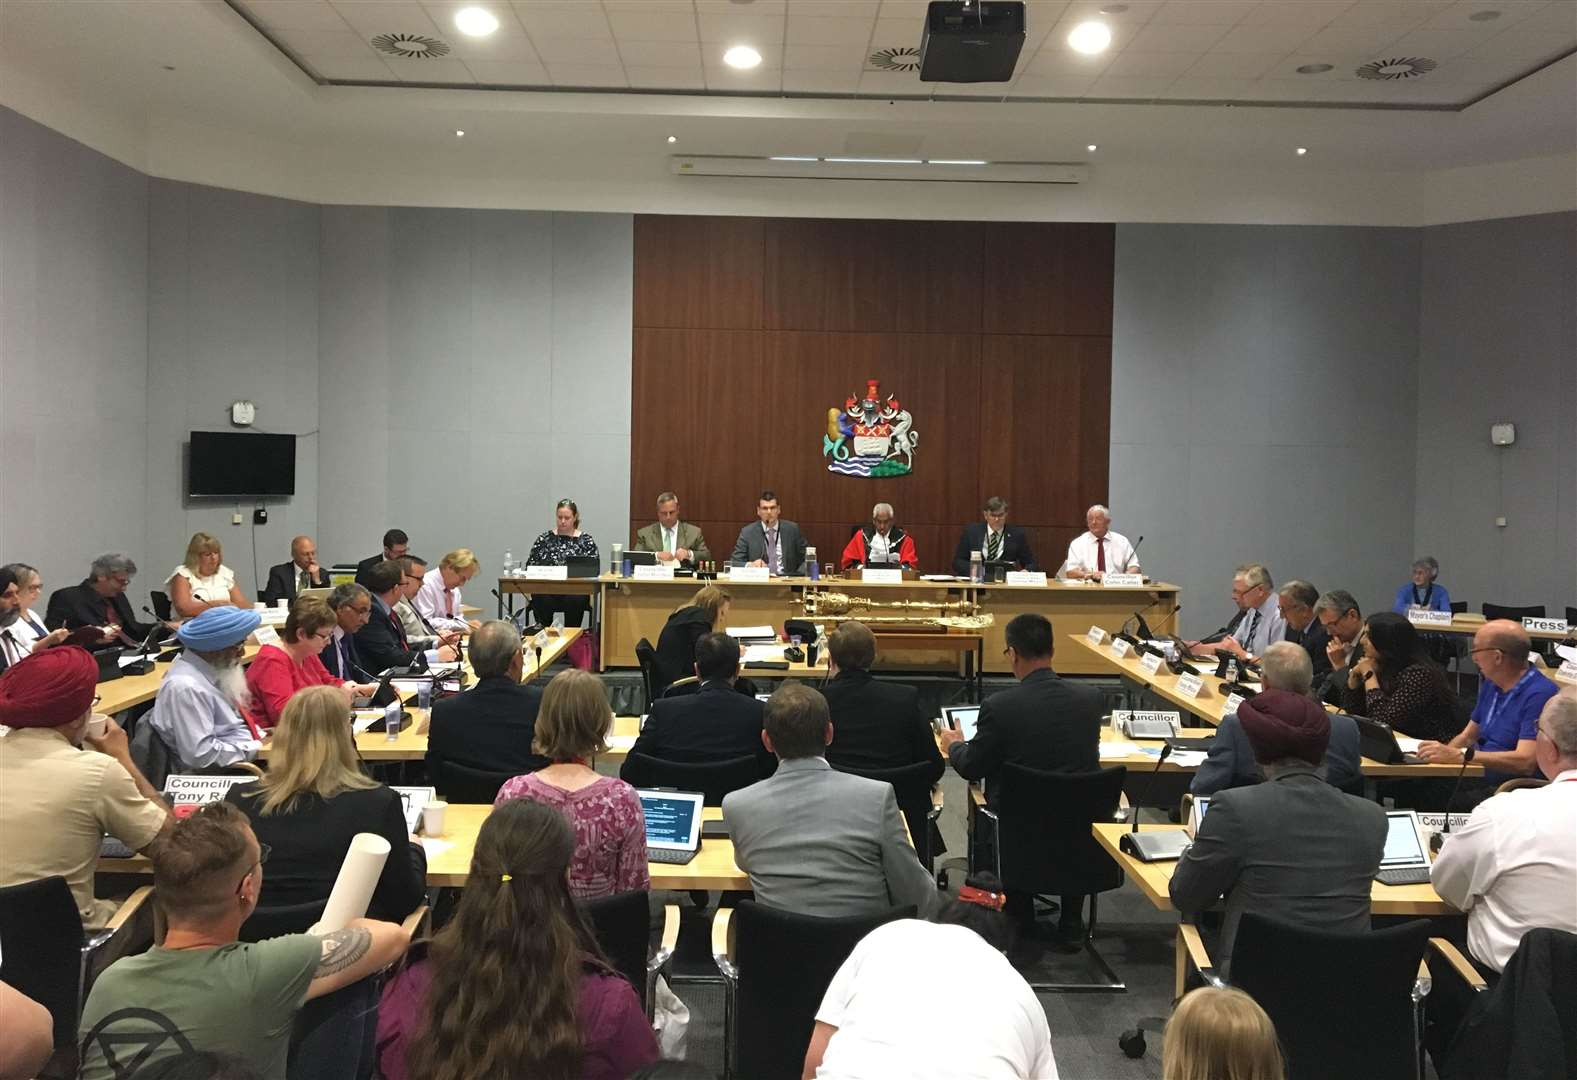 Councillors to be sent on anti-bullying courses